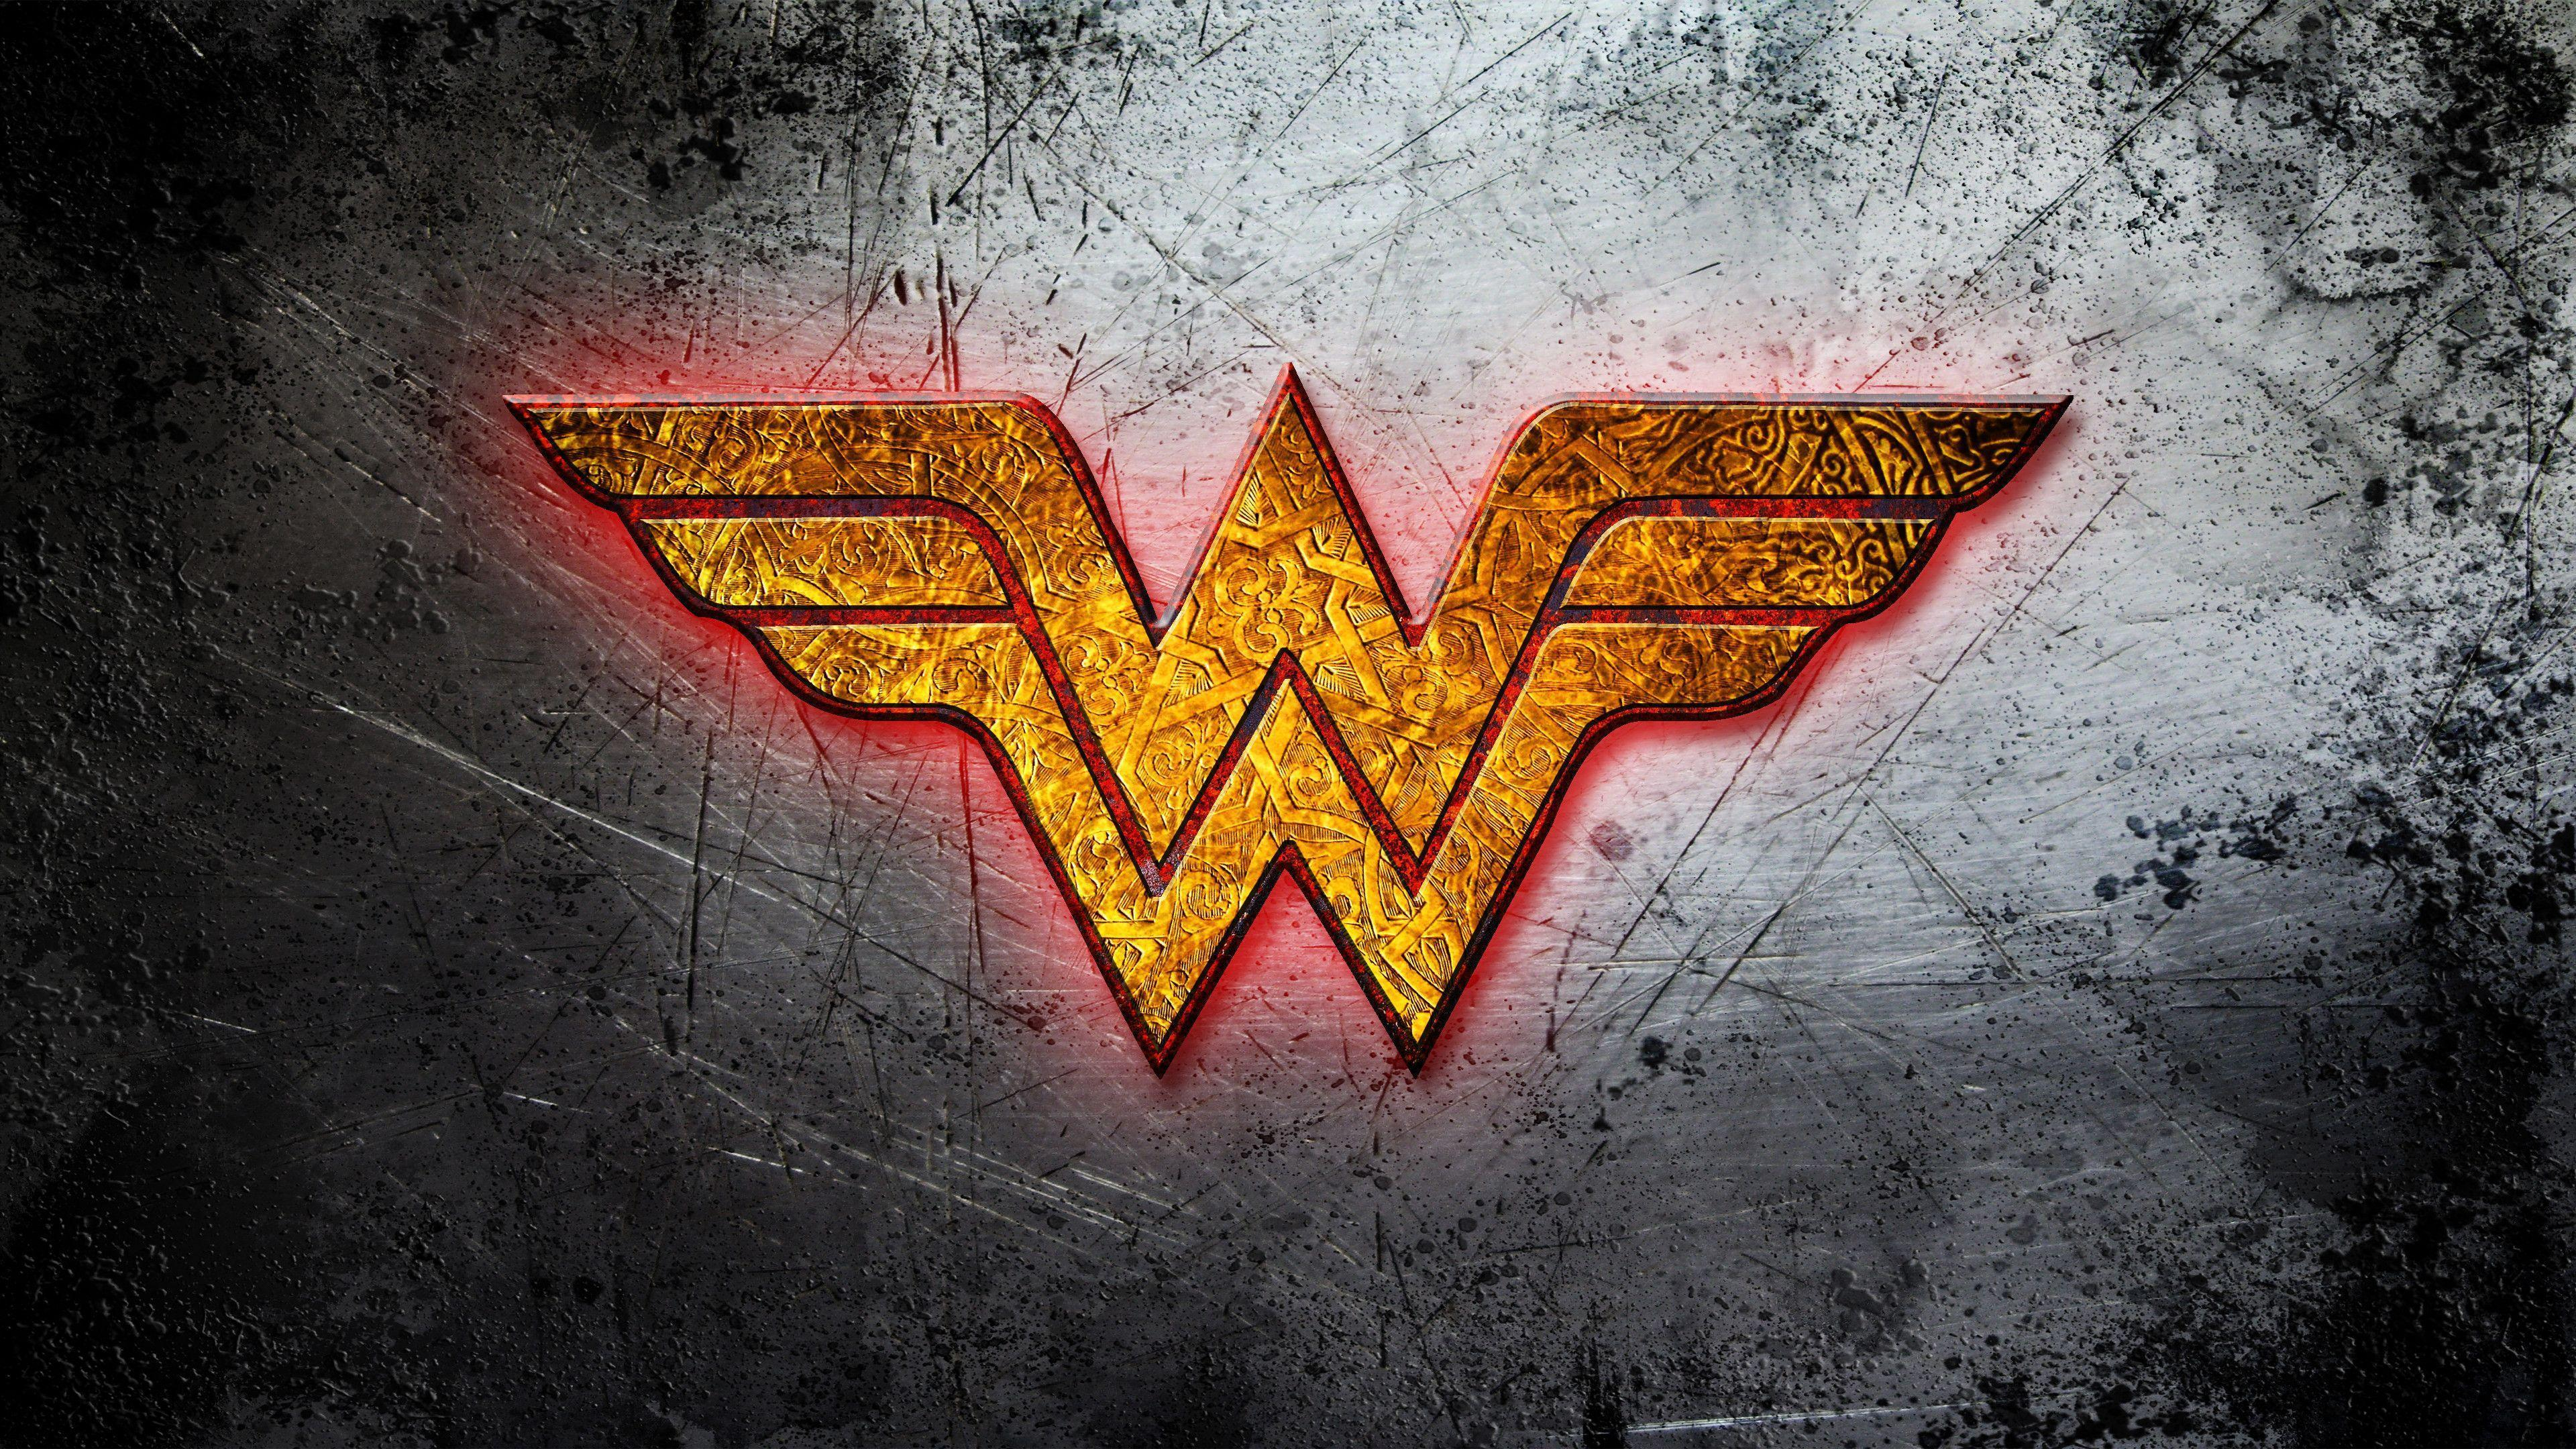 HD Wonder Woman Wallpaper - WallpaperSafari